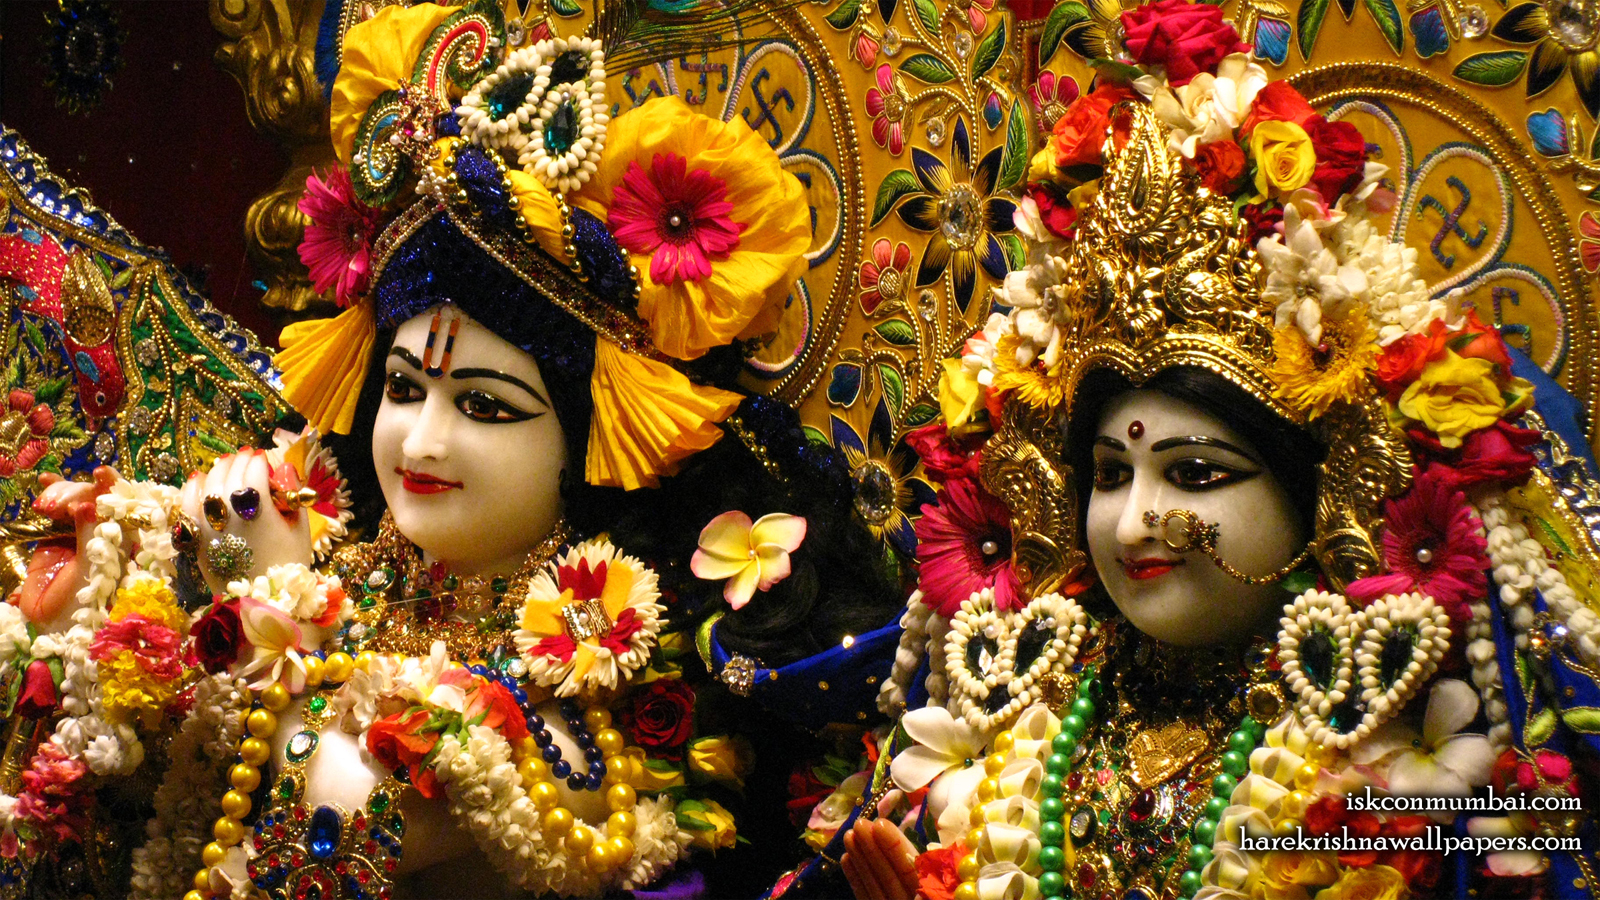 Sri Sri Radha Rasabihari Close up Wallpaper (017) Size 1600x900 Download